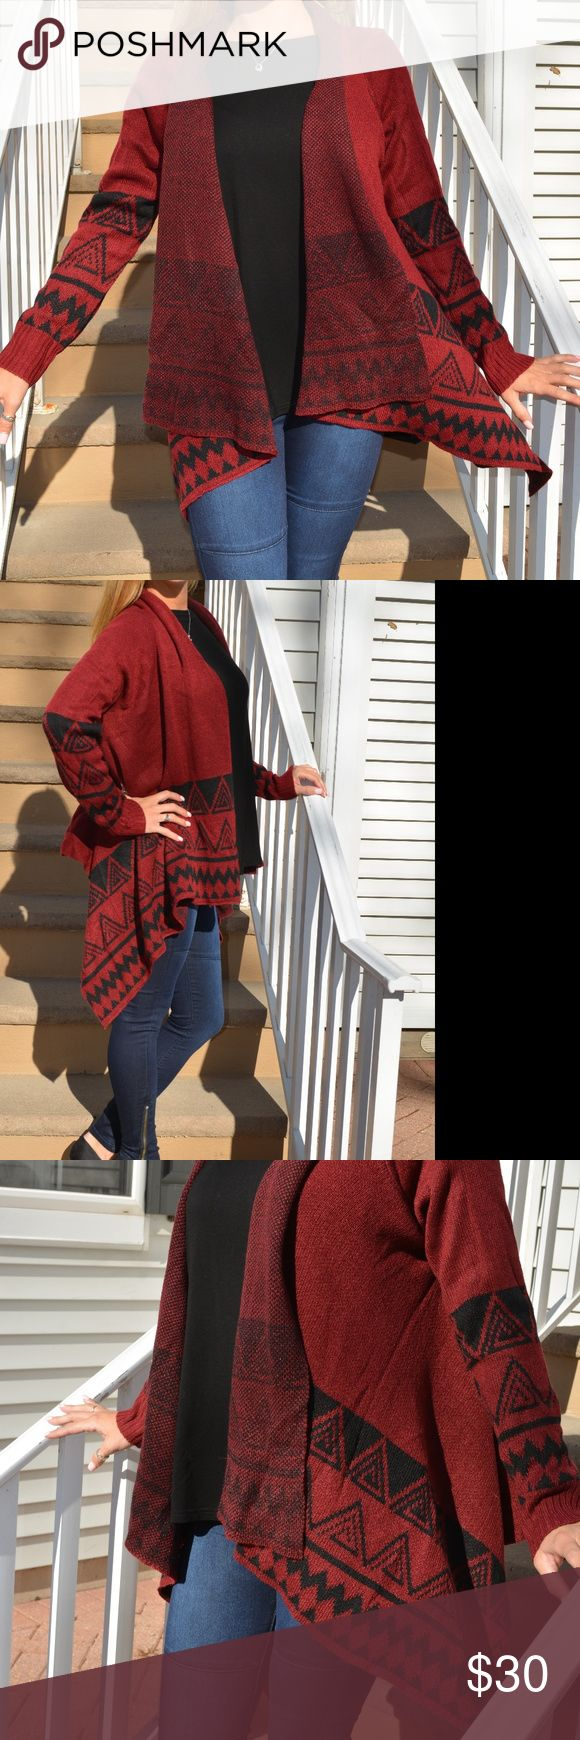 Red and Black Tribal Print Cardigan Red and Black Tribal Print Cardigan, One Size Fits All. Extremely warm, soft, and comfortable. Sweaters Cardigans